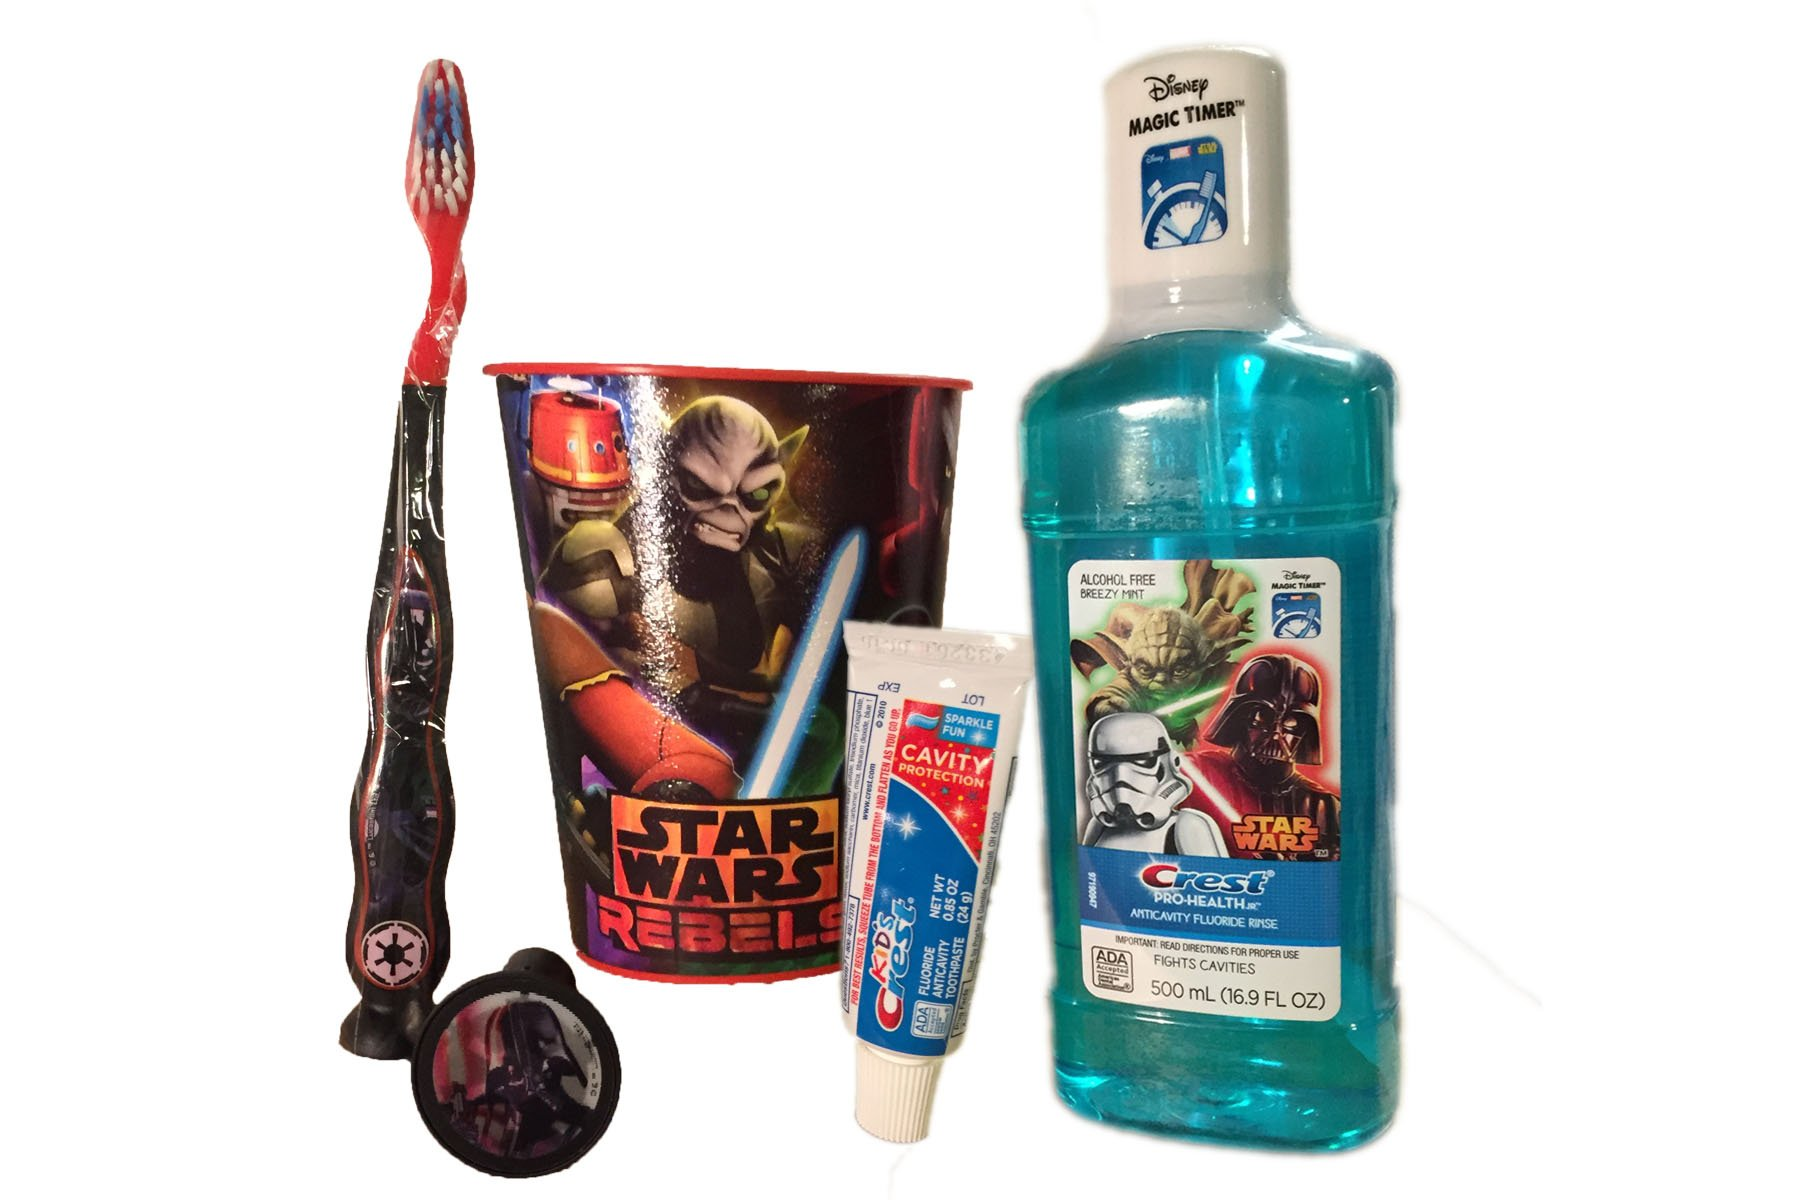 Star Wars 5pc Darth Vader Travel Toothbrush Set. Firefly Manual Toothbrush, Toothbrush Cap, Travel Size Kids Crest Toothpaste, Crest Alcohol Free Mouth Rinse, bonus 16oz Star Wars Mouth Rinse Cup.